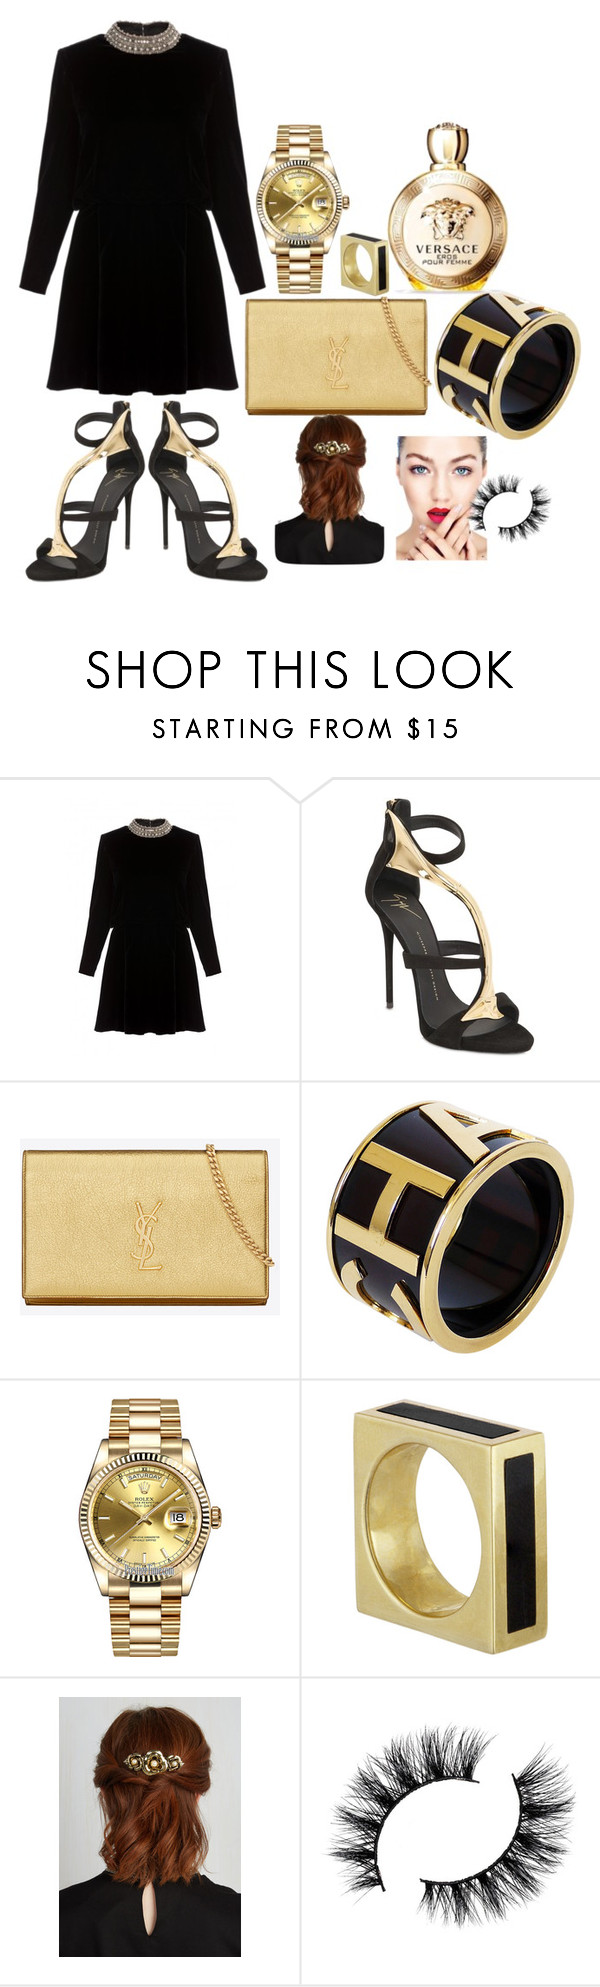 """Untitled #110"" by nabilaseshaa ❤ liked on Polyvore featuring Yves Saint Laurent, Giuseppe Zanotti, Chanel, Rolex and Versace"